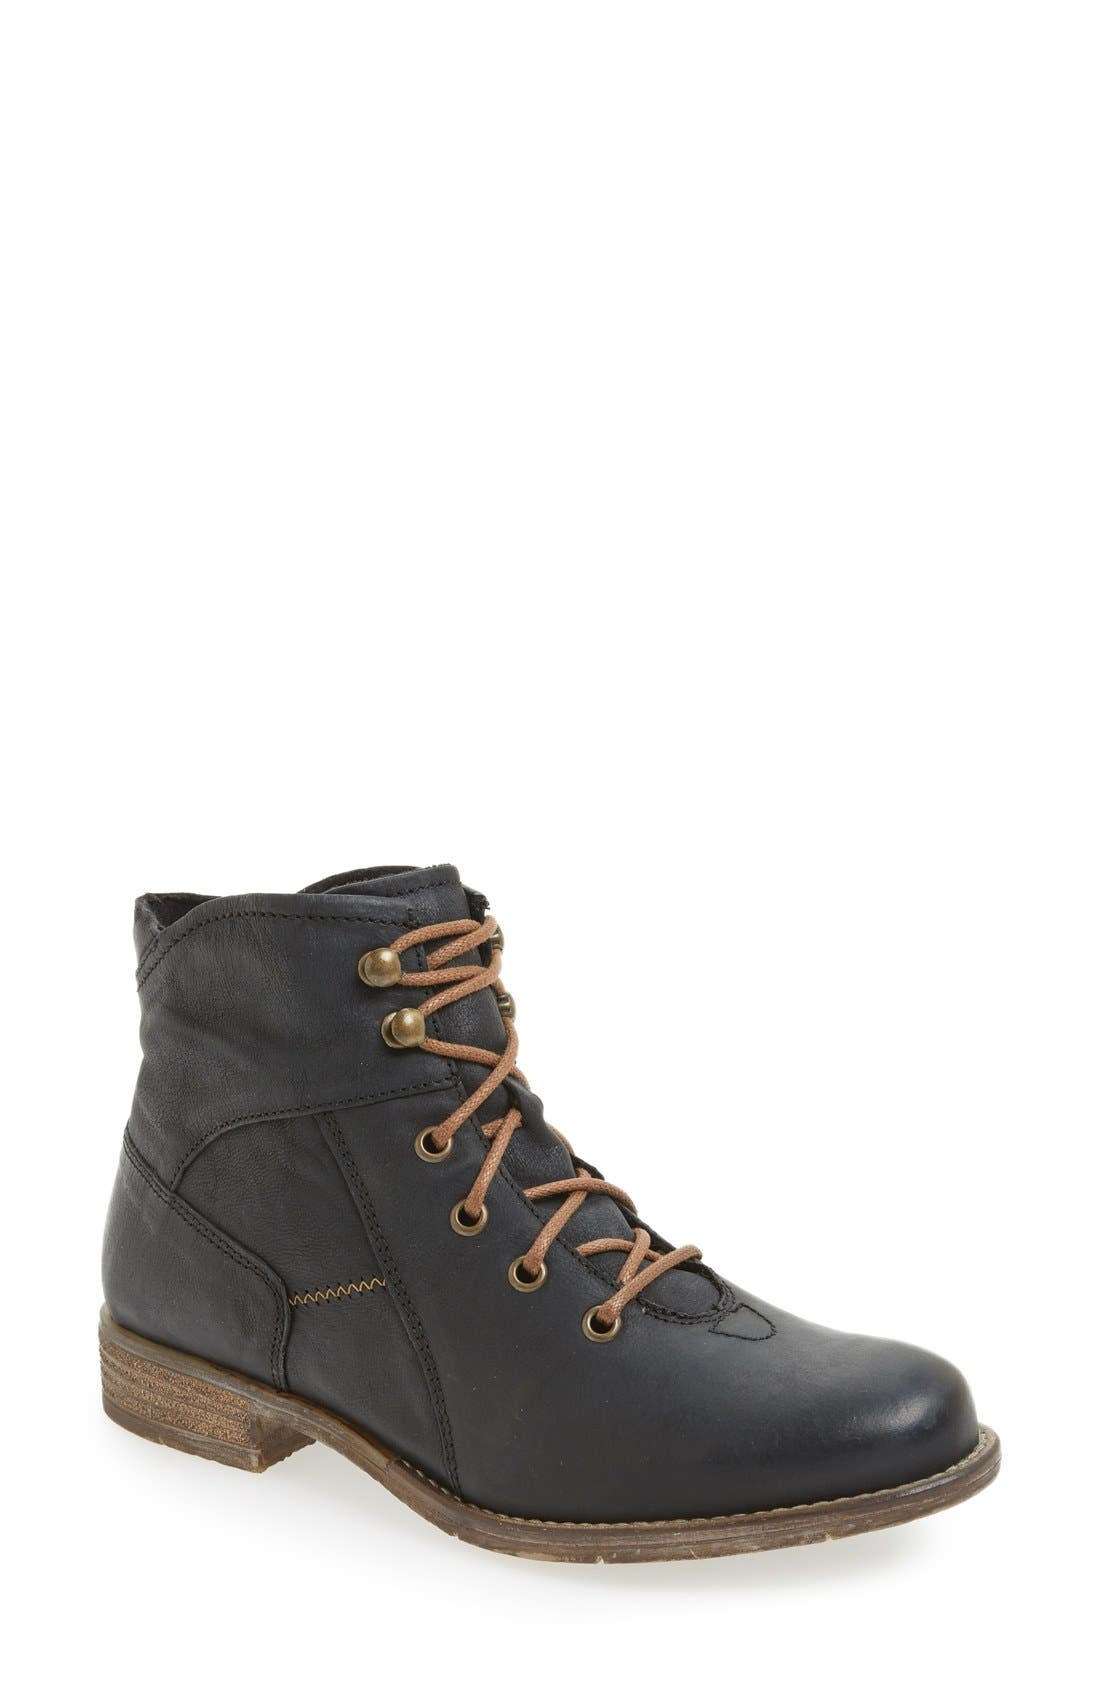 Sienna 11 Boot,                             Main thumbnail 1, color,                             008